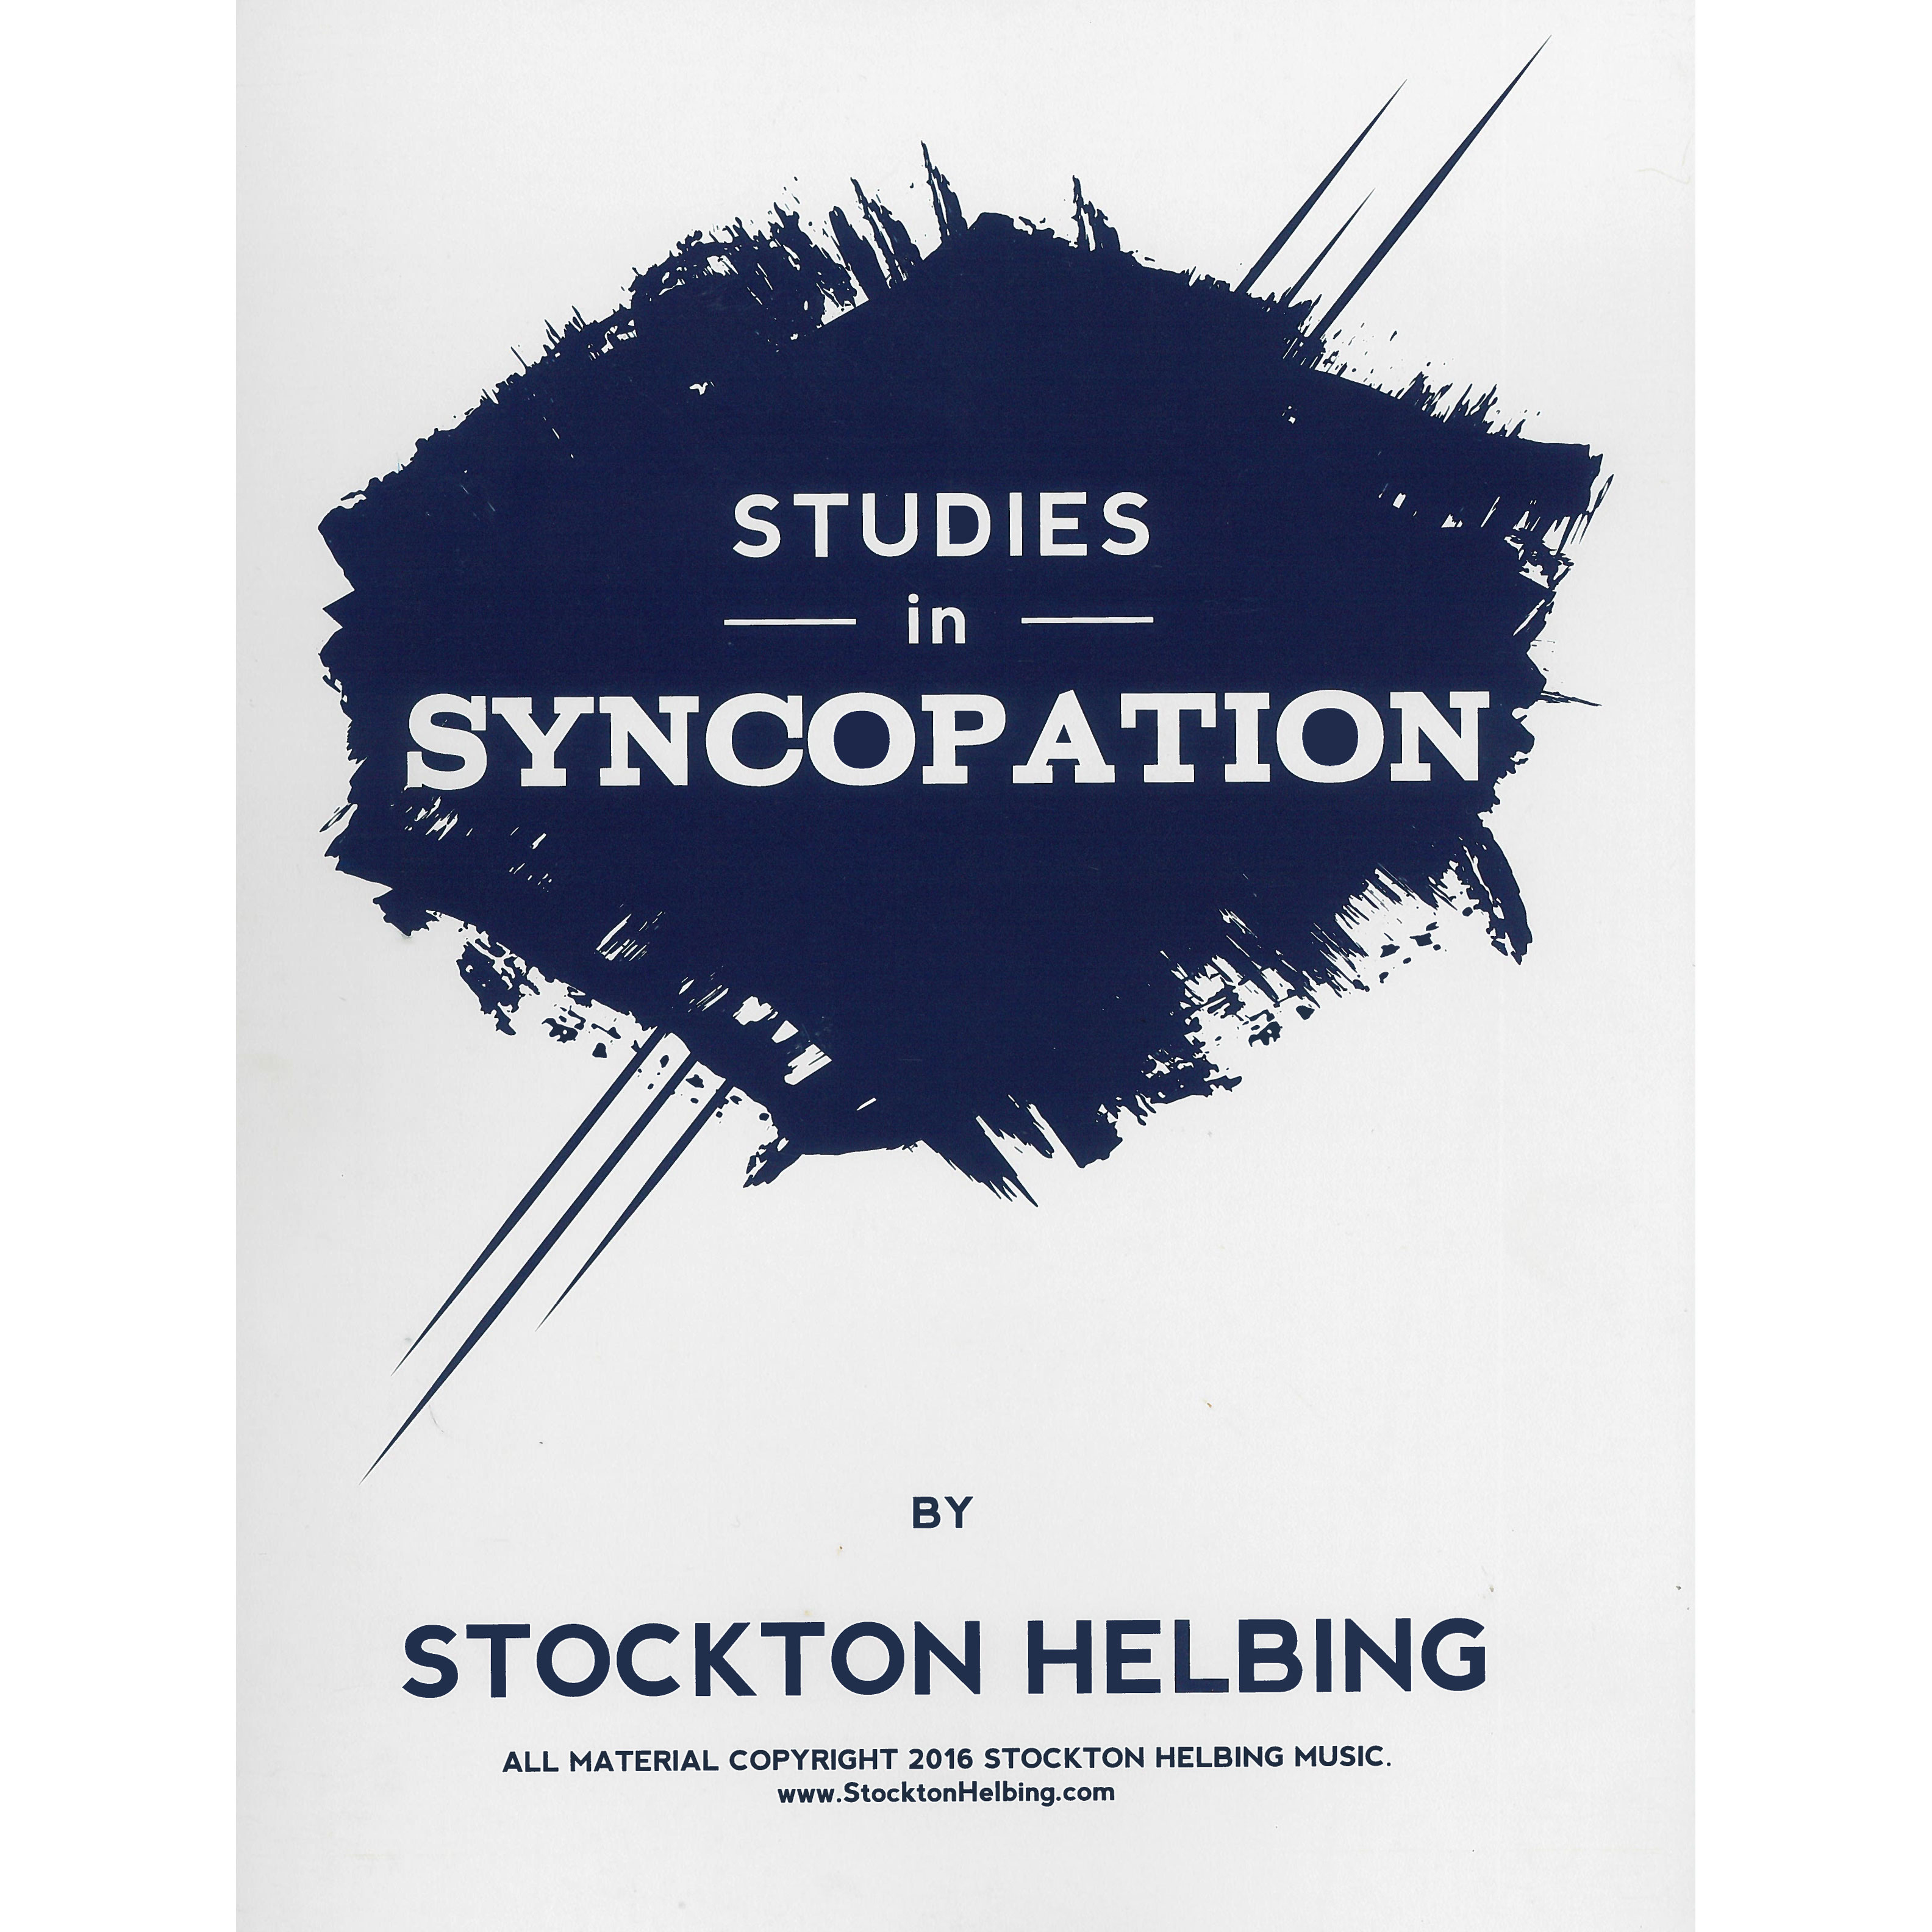 Studies in Syncopation by Stockton Helbing